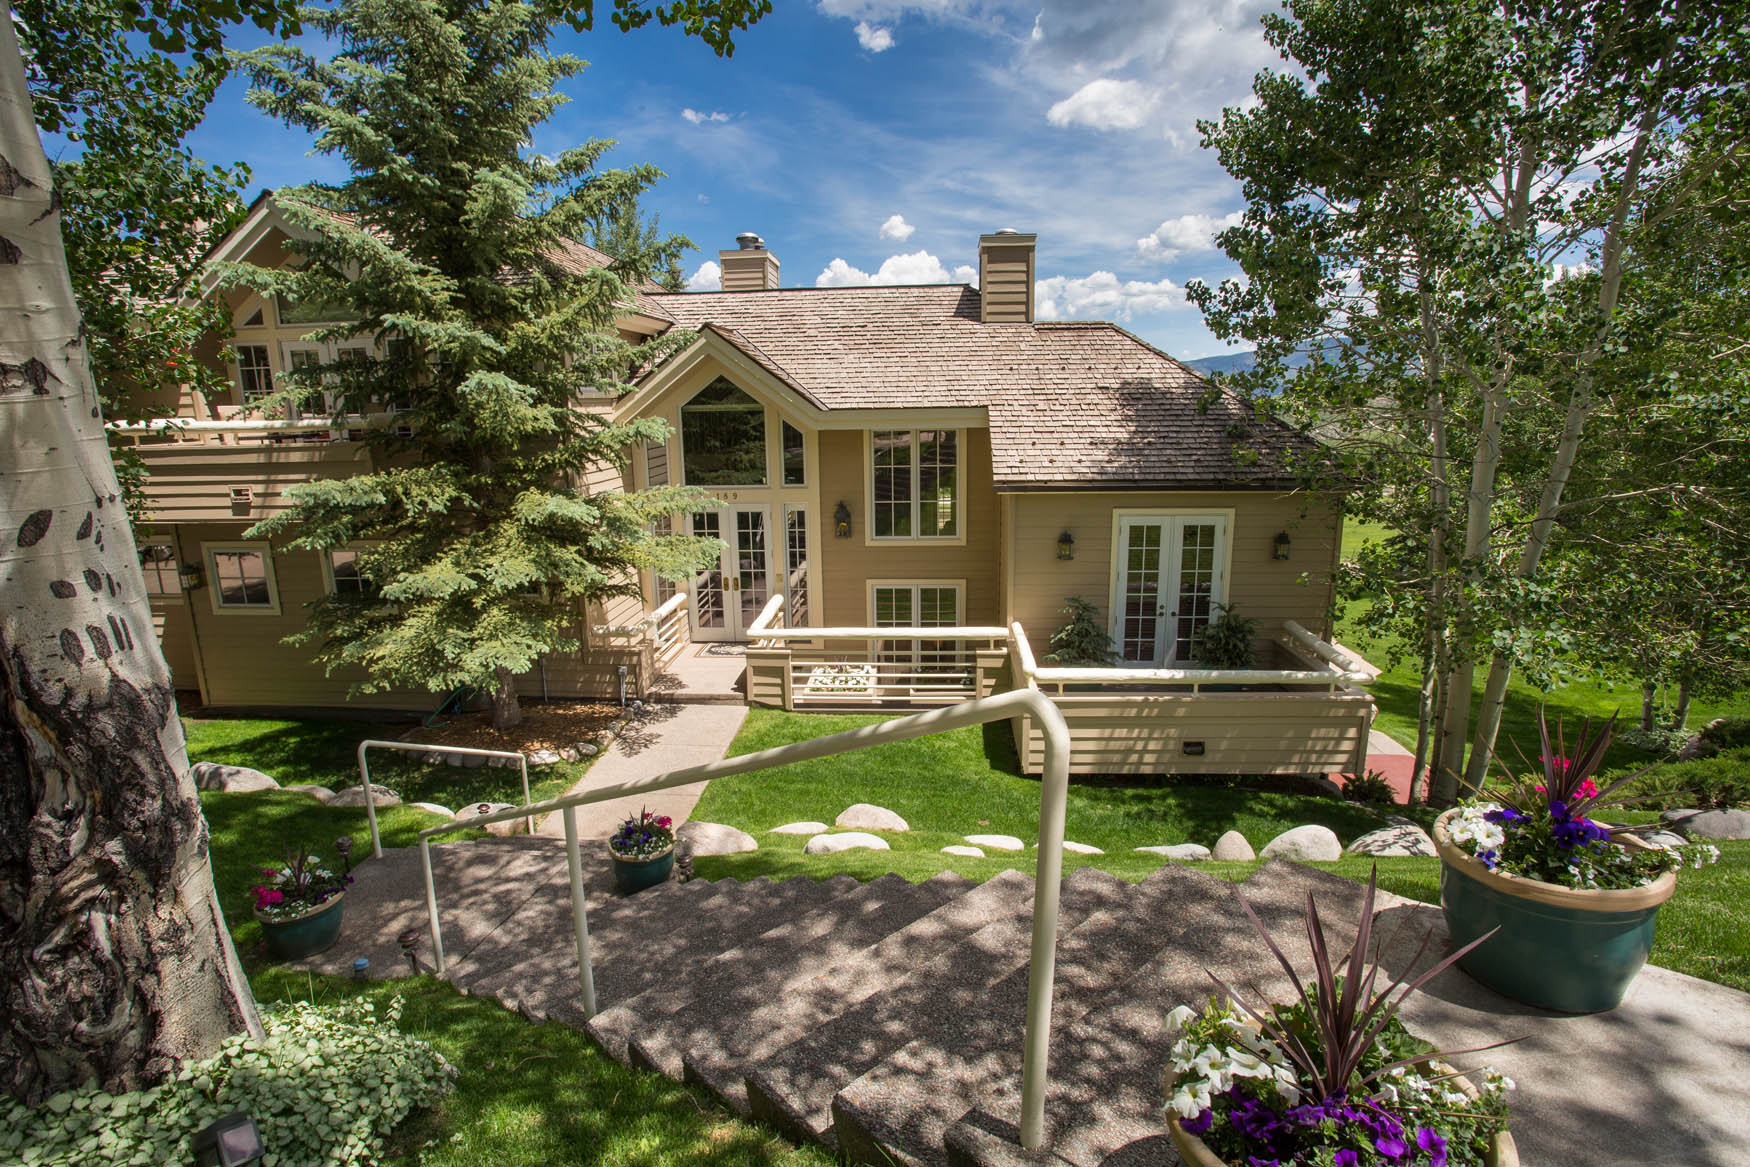 Casa Unifamiliar por un Venta en Snowmass Village 189 Fox Lane Snowmass Village, Colorado 81615 Estados Unidos